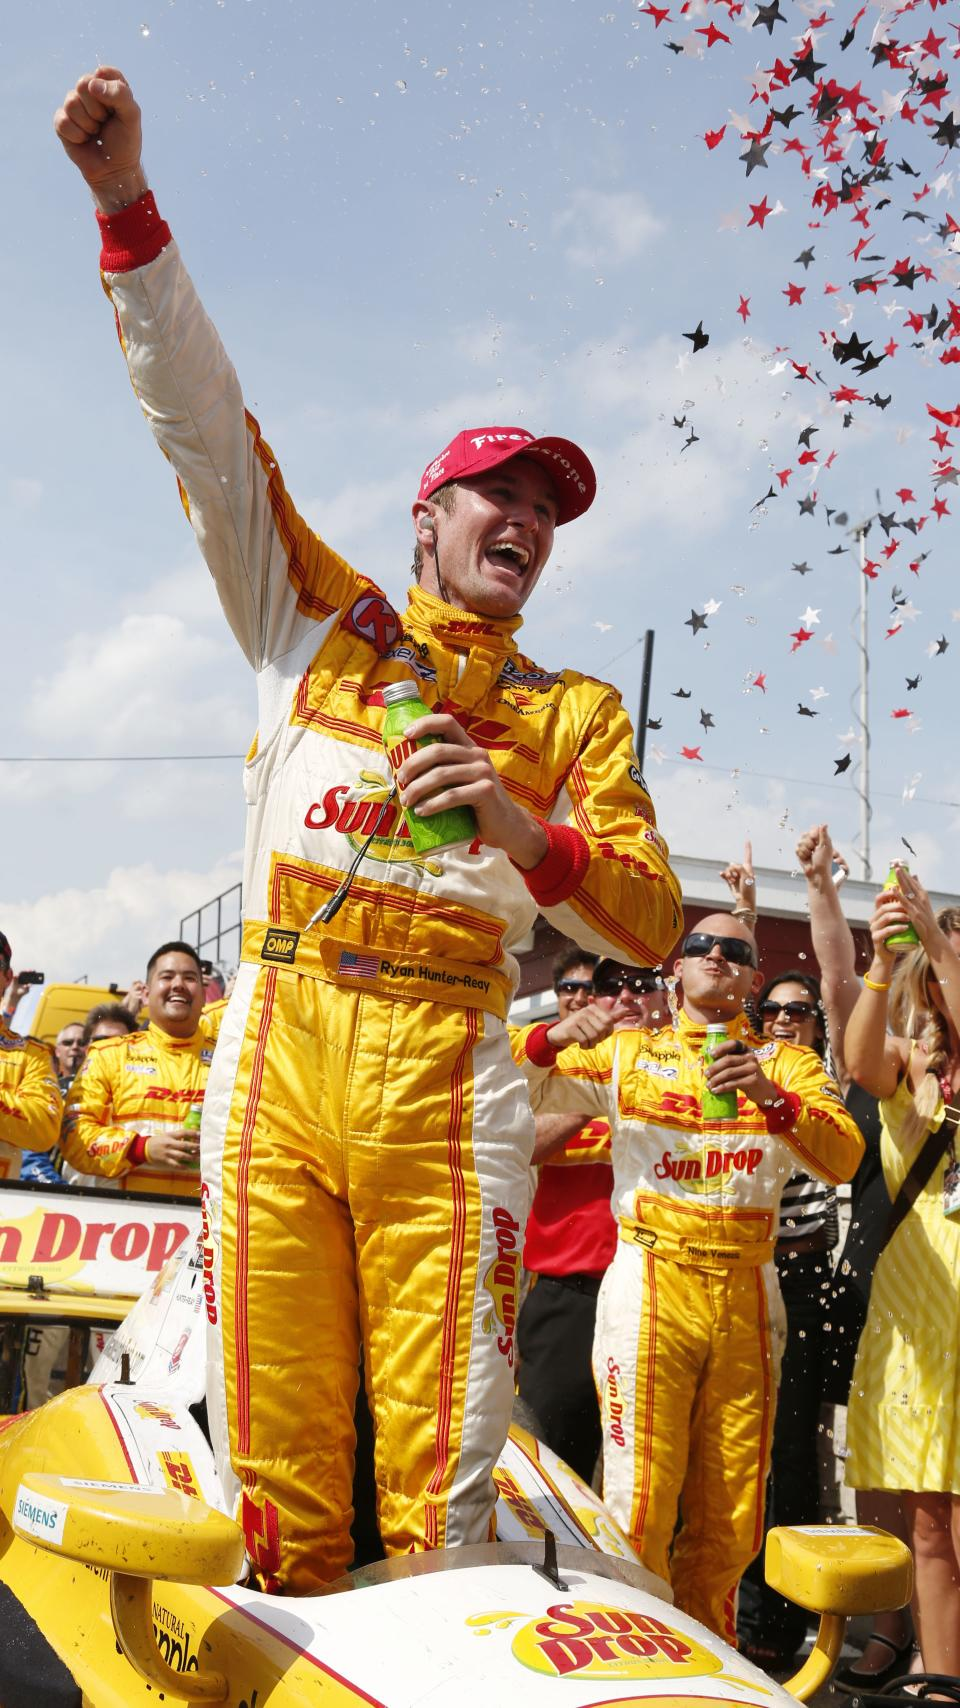 Ryan Hunter-Reay celebrates after winning the IndyCar auto race at the Milwaukee Mile in West Allis, Wis., Saturday, June 16, 2012. (AP Photo/Jeffrey Phelps)